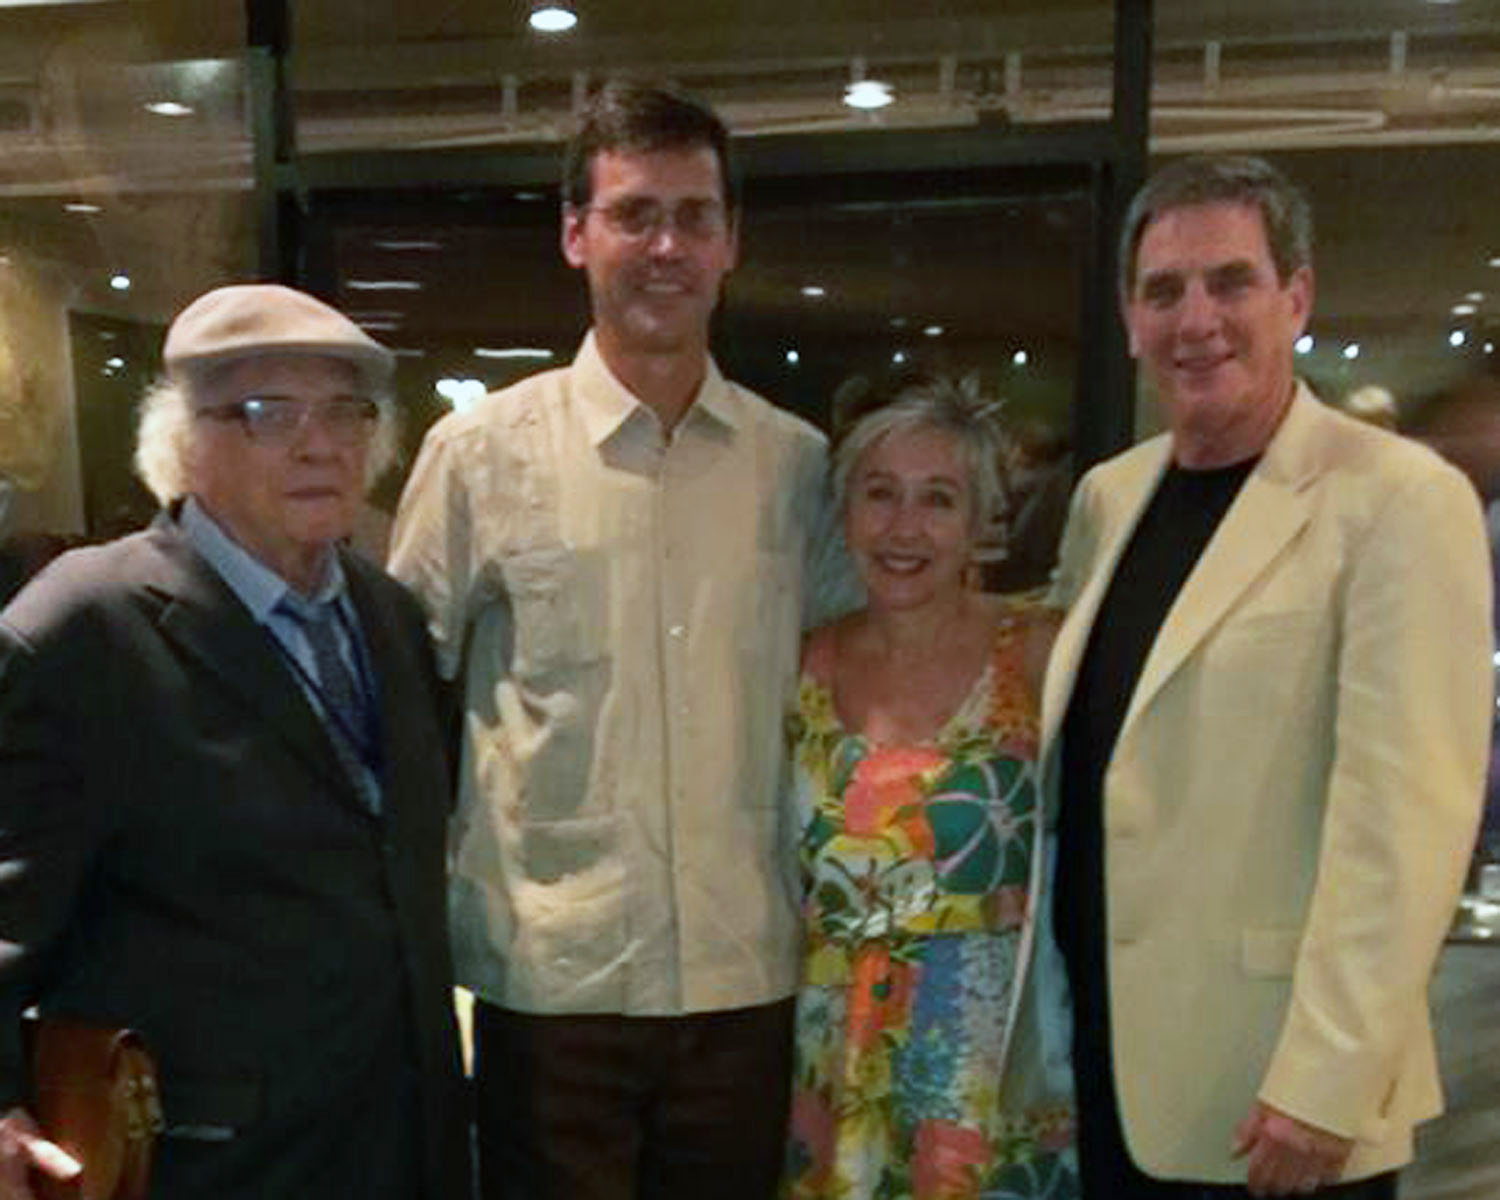 Prof. Doolittle (R) with his wife, Shannon Bieberdorf, Christian Brannstrom, CLAG Chair, and Prof. Pedro Geiger (L) of Brazil, the 2013 awardee.